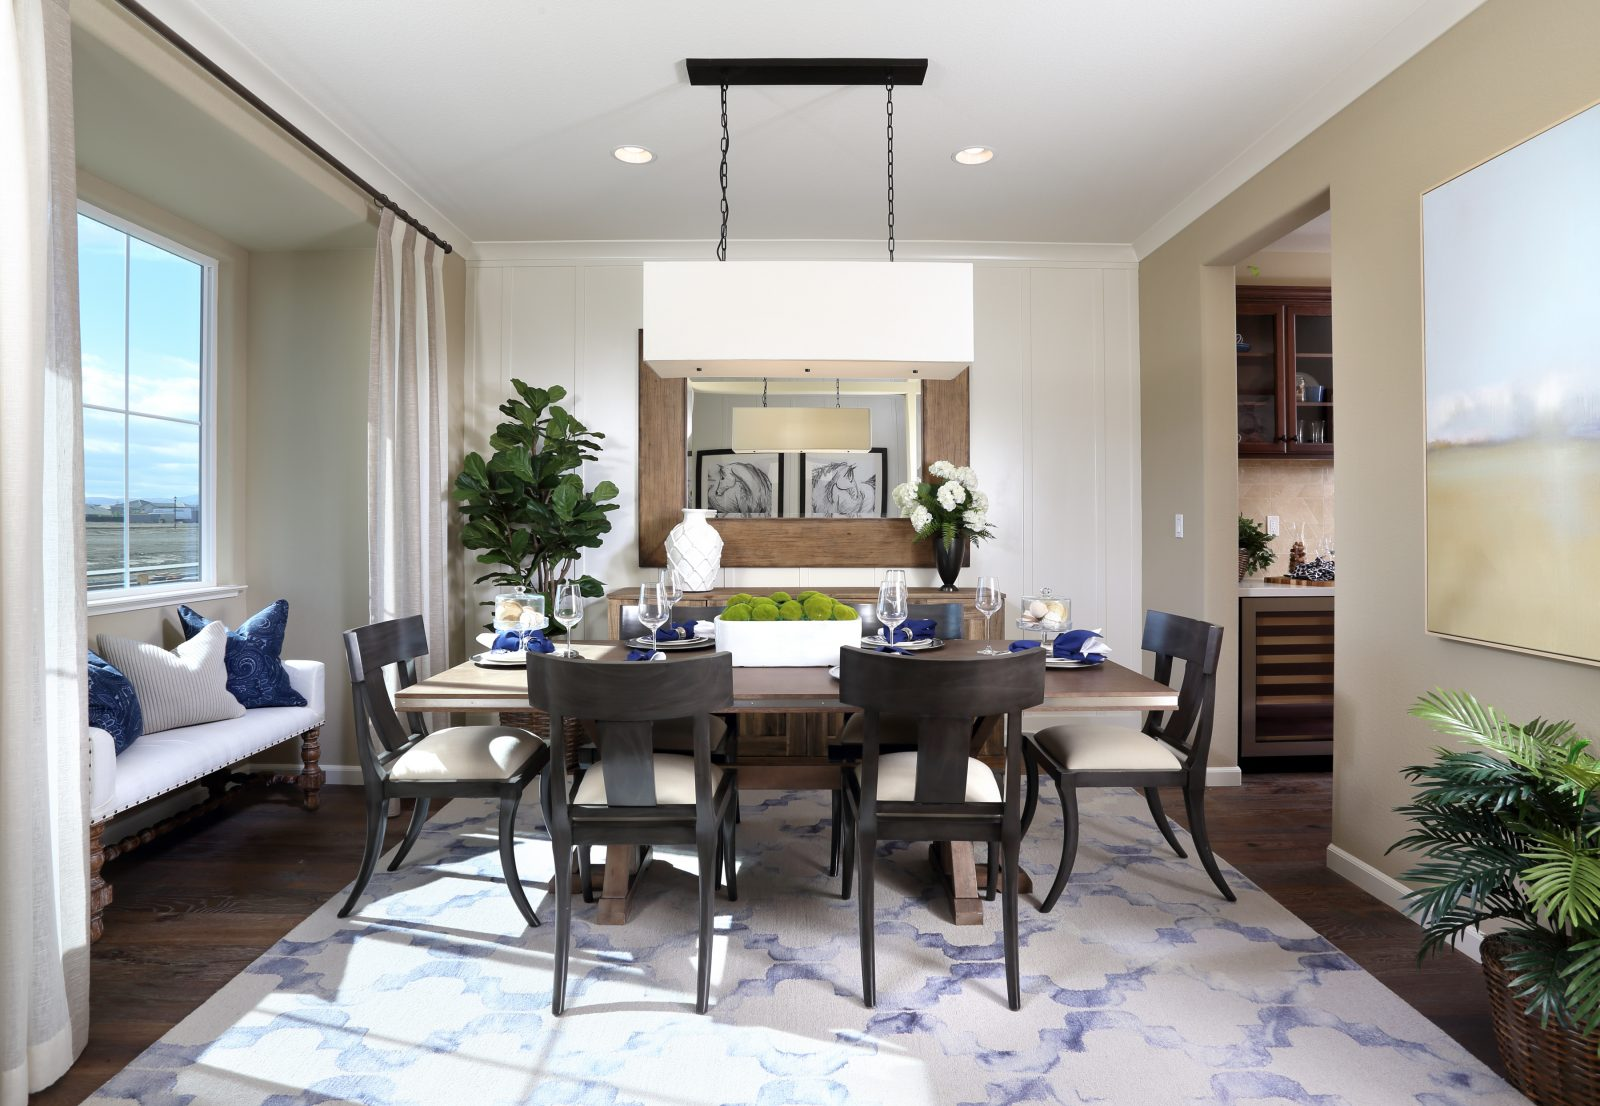 Dining room in new luxury home | Merritt at Emerson Ranch in Oakley, CA | Brookfield Residential